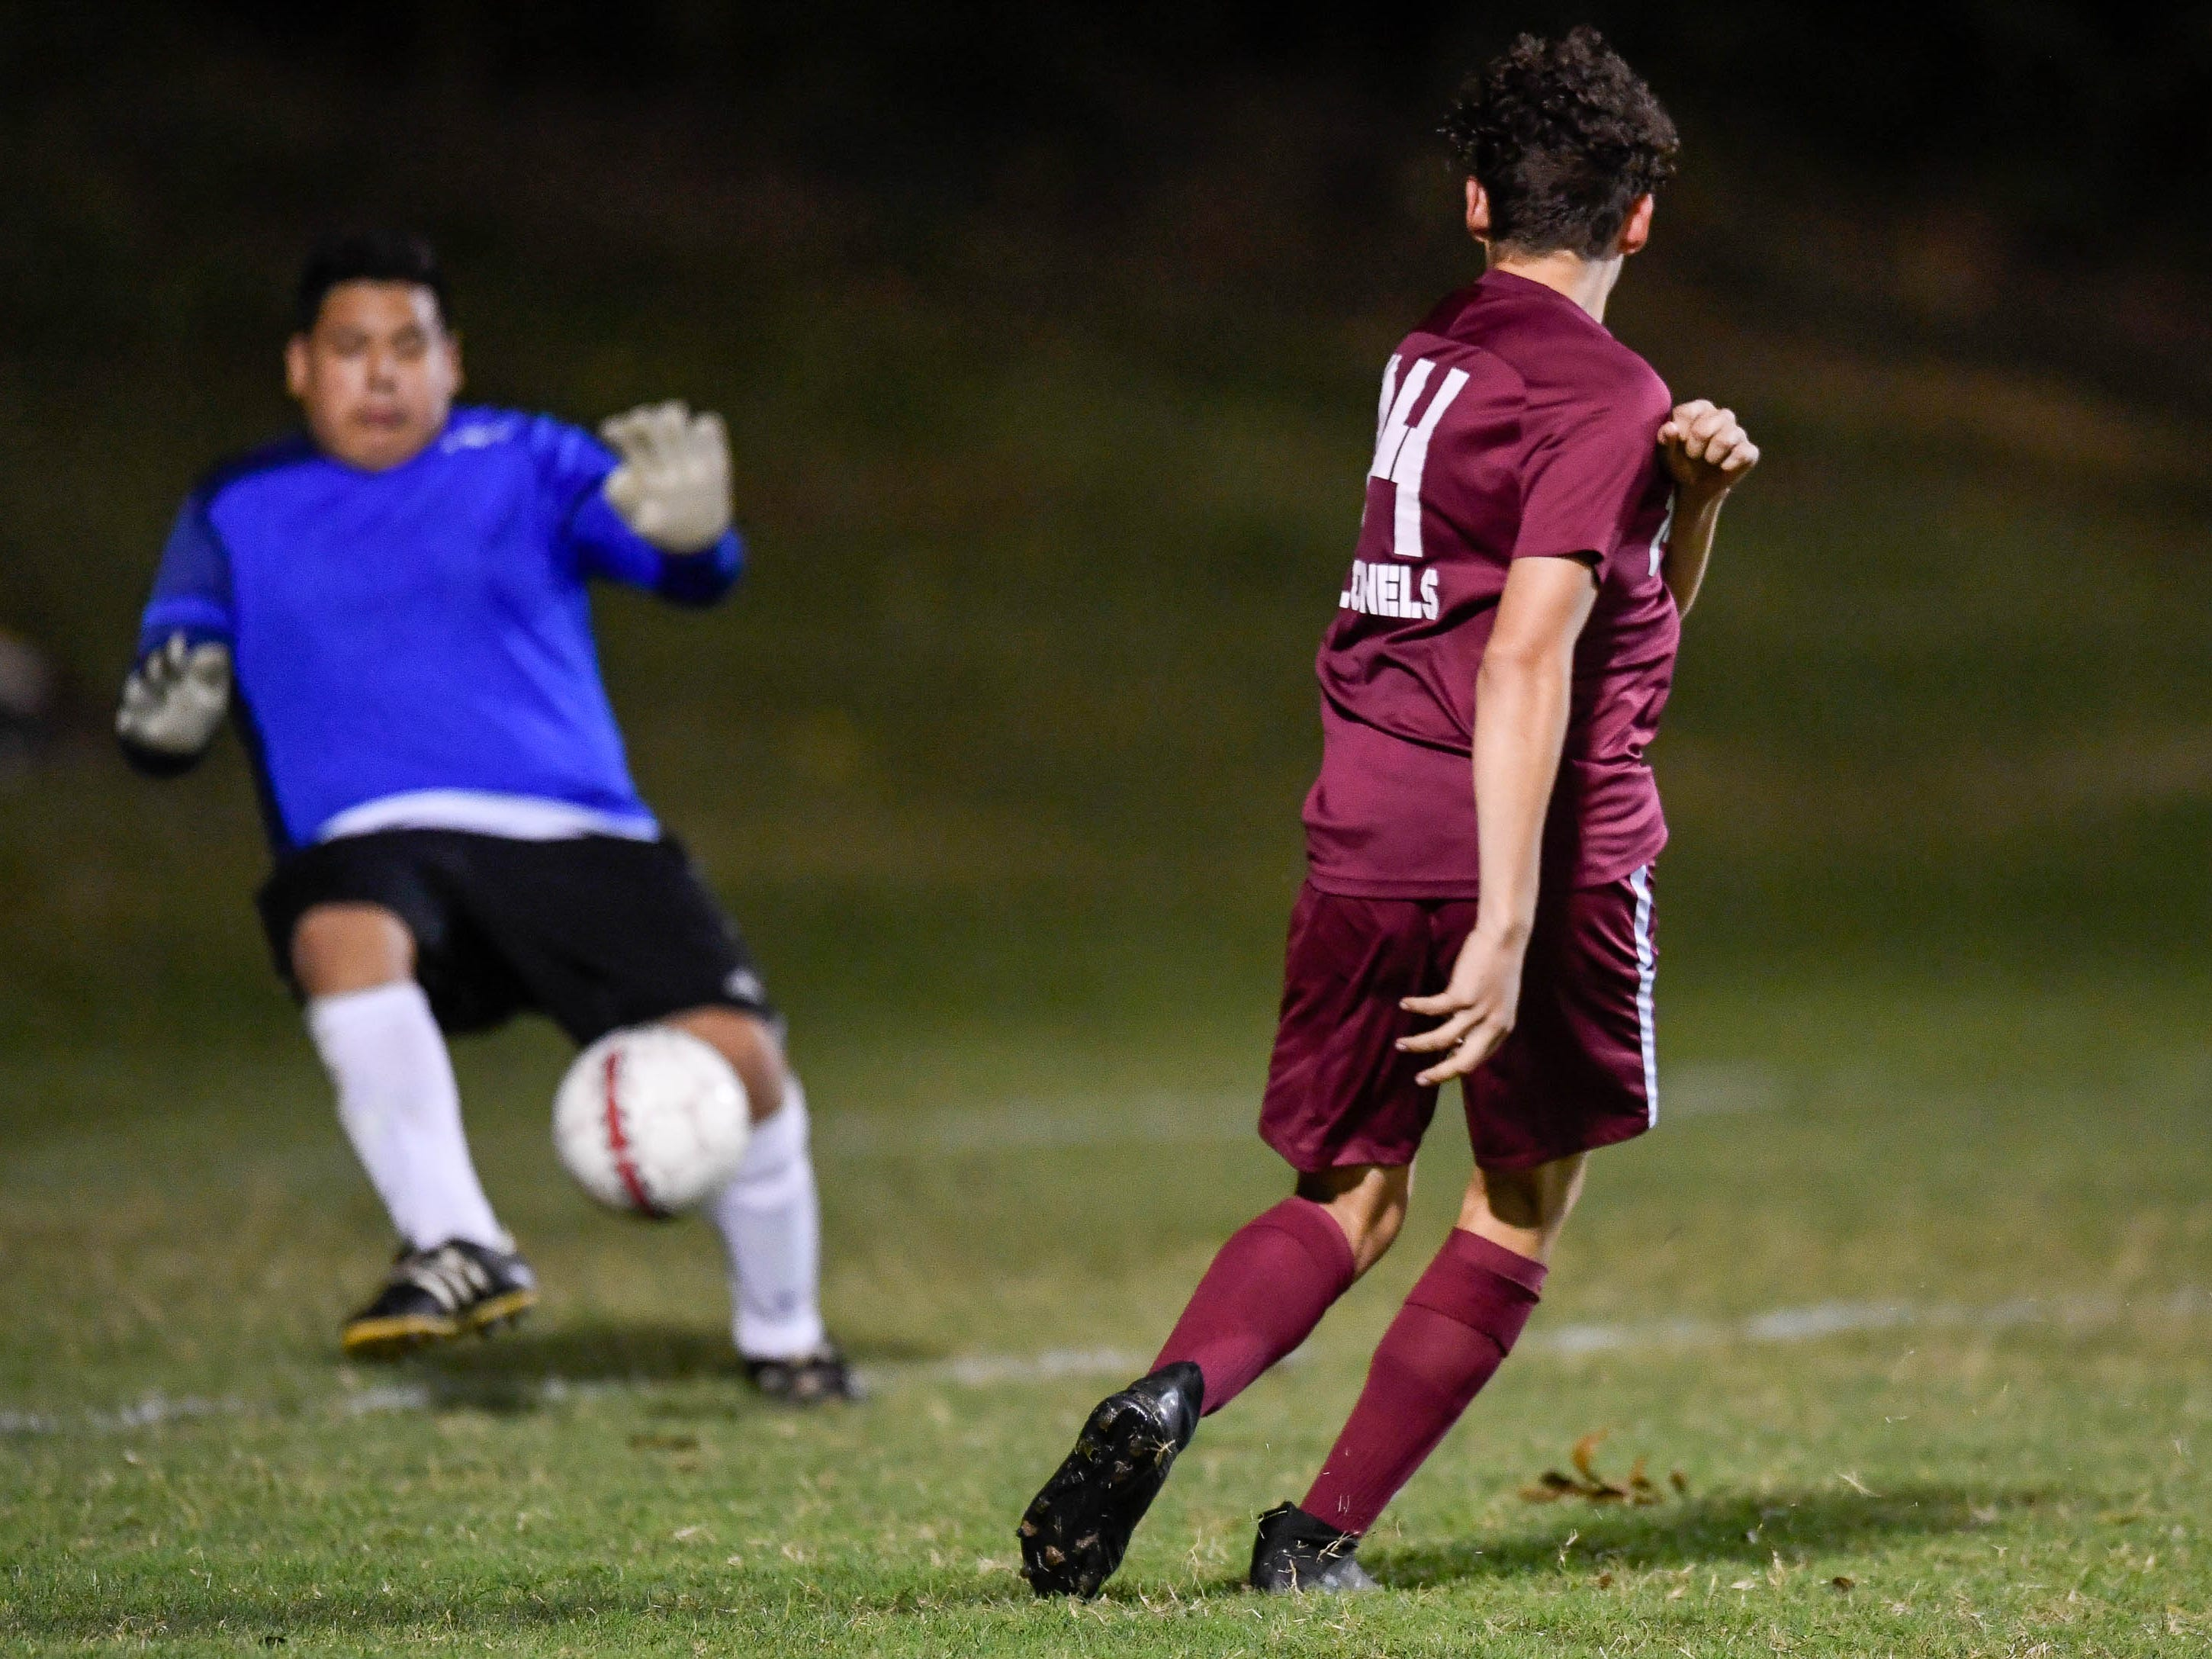 Henderson County's Jordan Toribio (14) makes a goal shot as the Henderson County Colonels play the Webster County Trojans in the Sixth District Soccer Tournament at Colonel Field Wednesday, October 10, 2018.